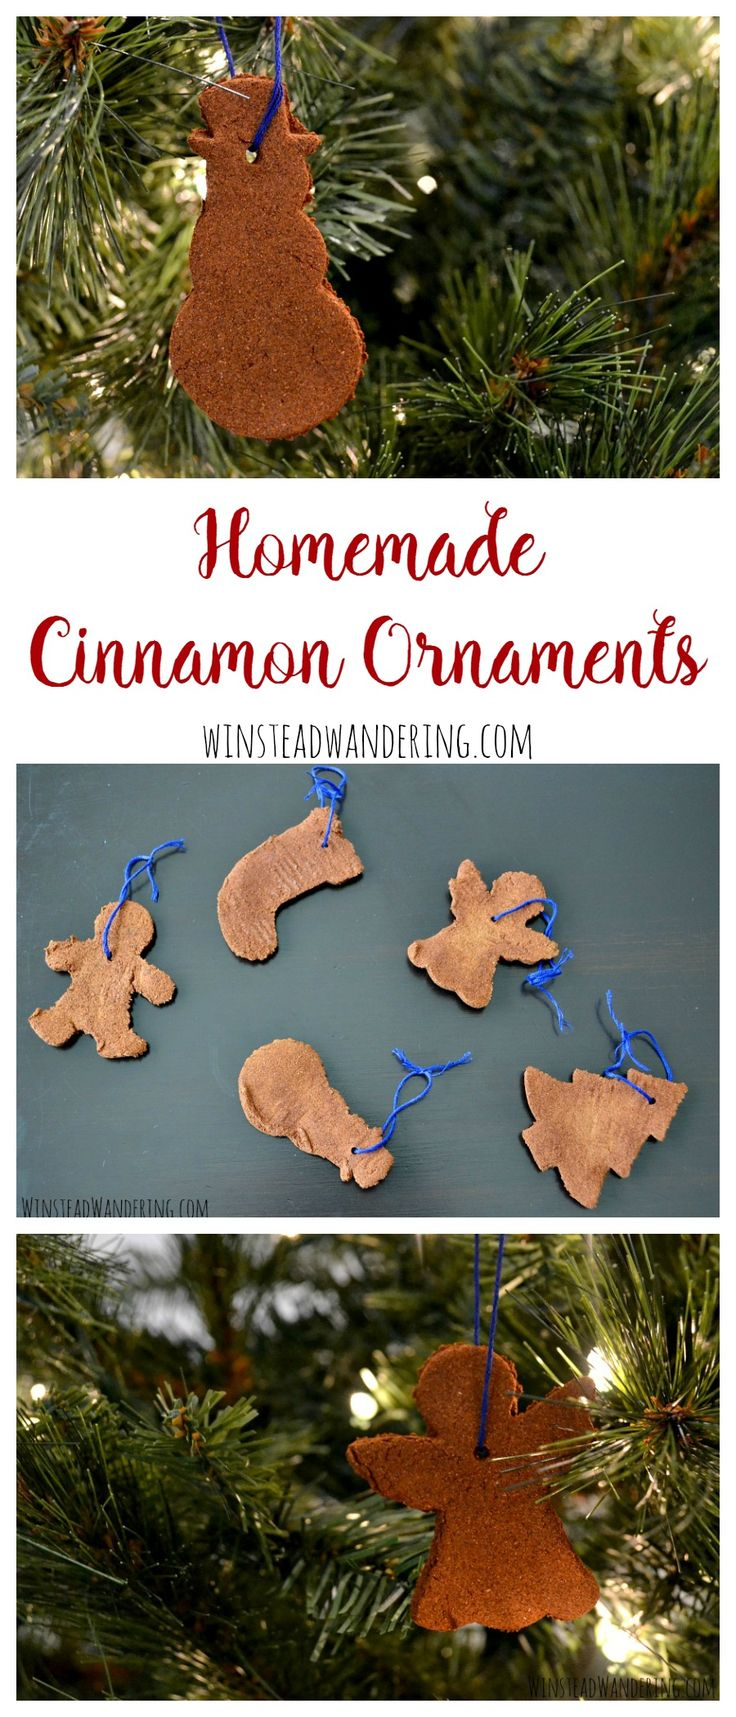 With just two ingredients, you can make easy homemade cinnamon ornaments: a perfect DIY for decorating or gifting. What a fun craft for kids!